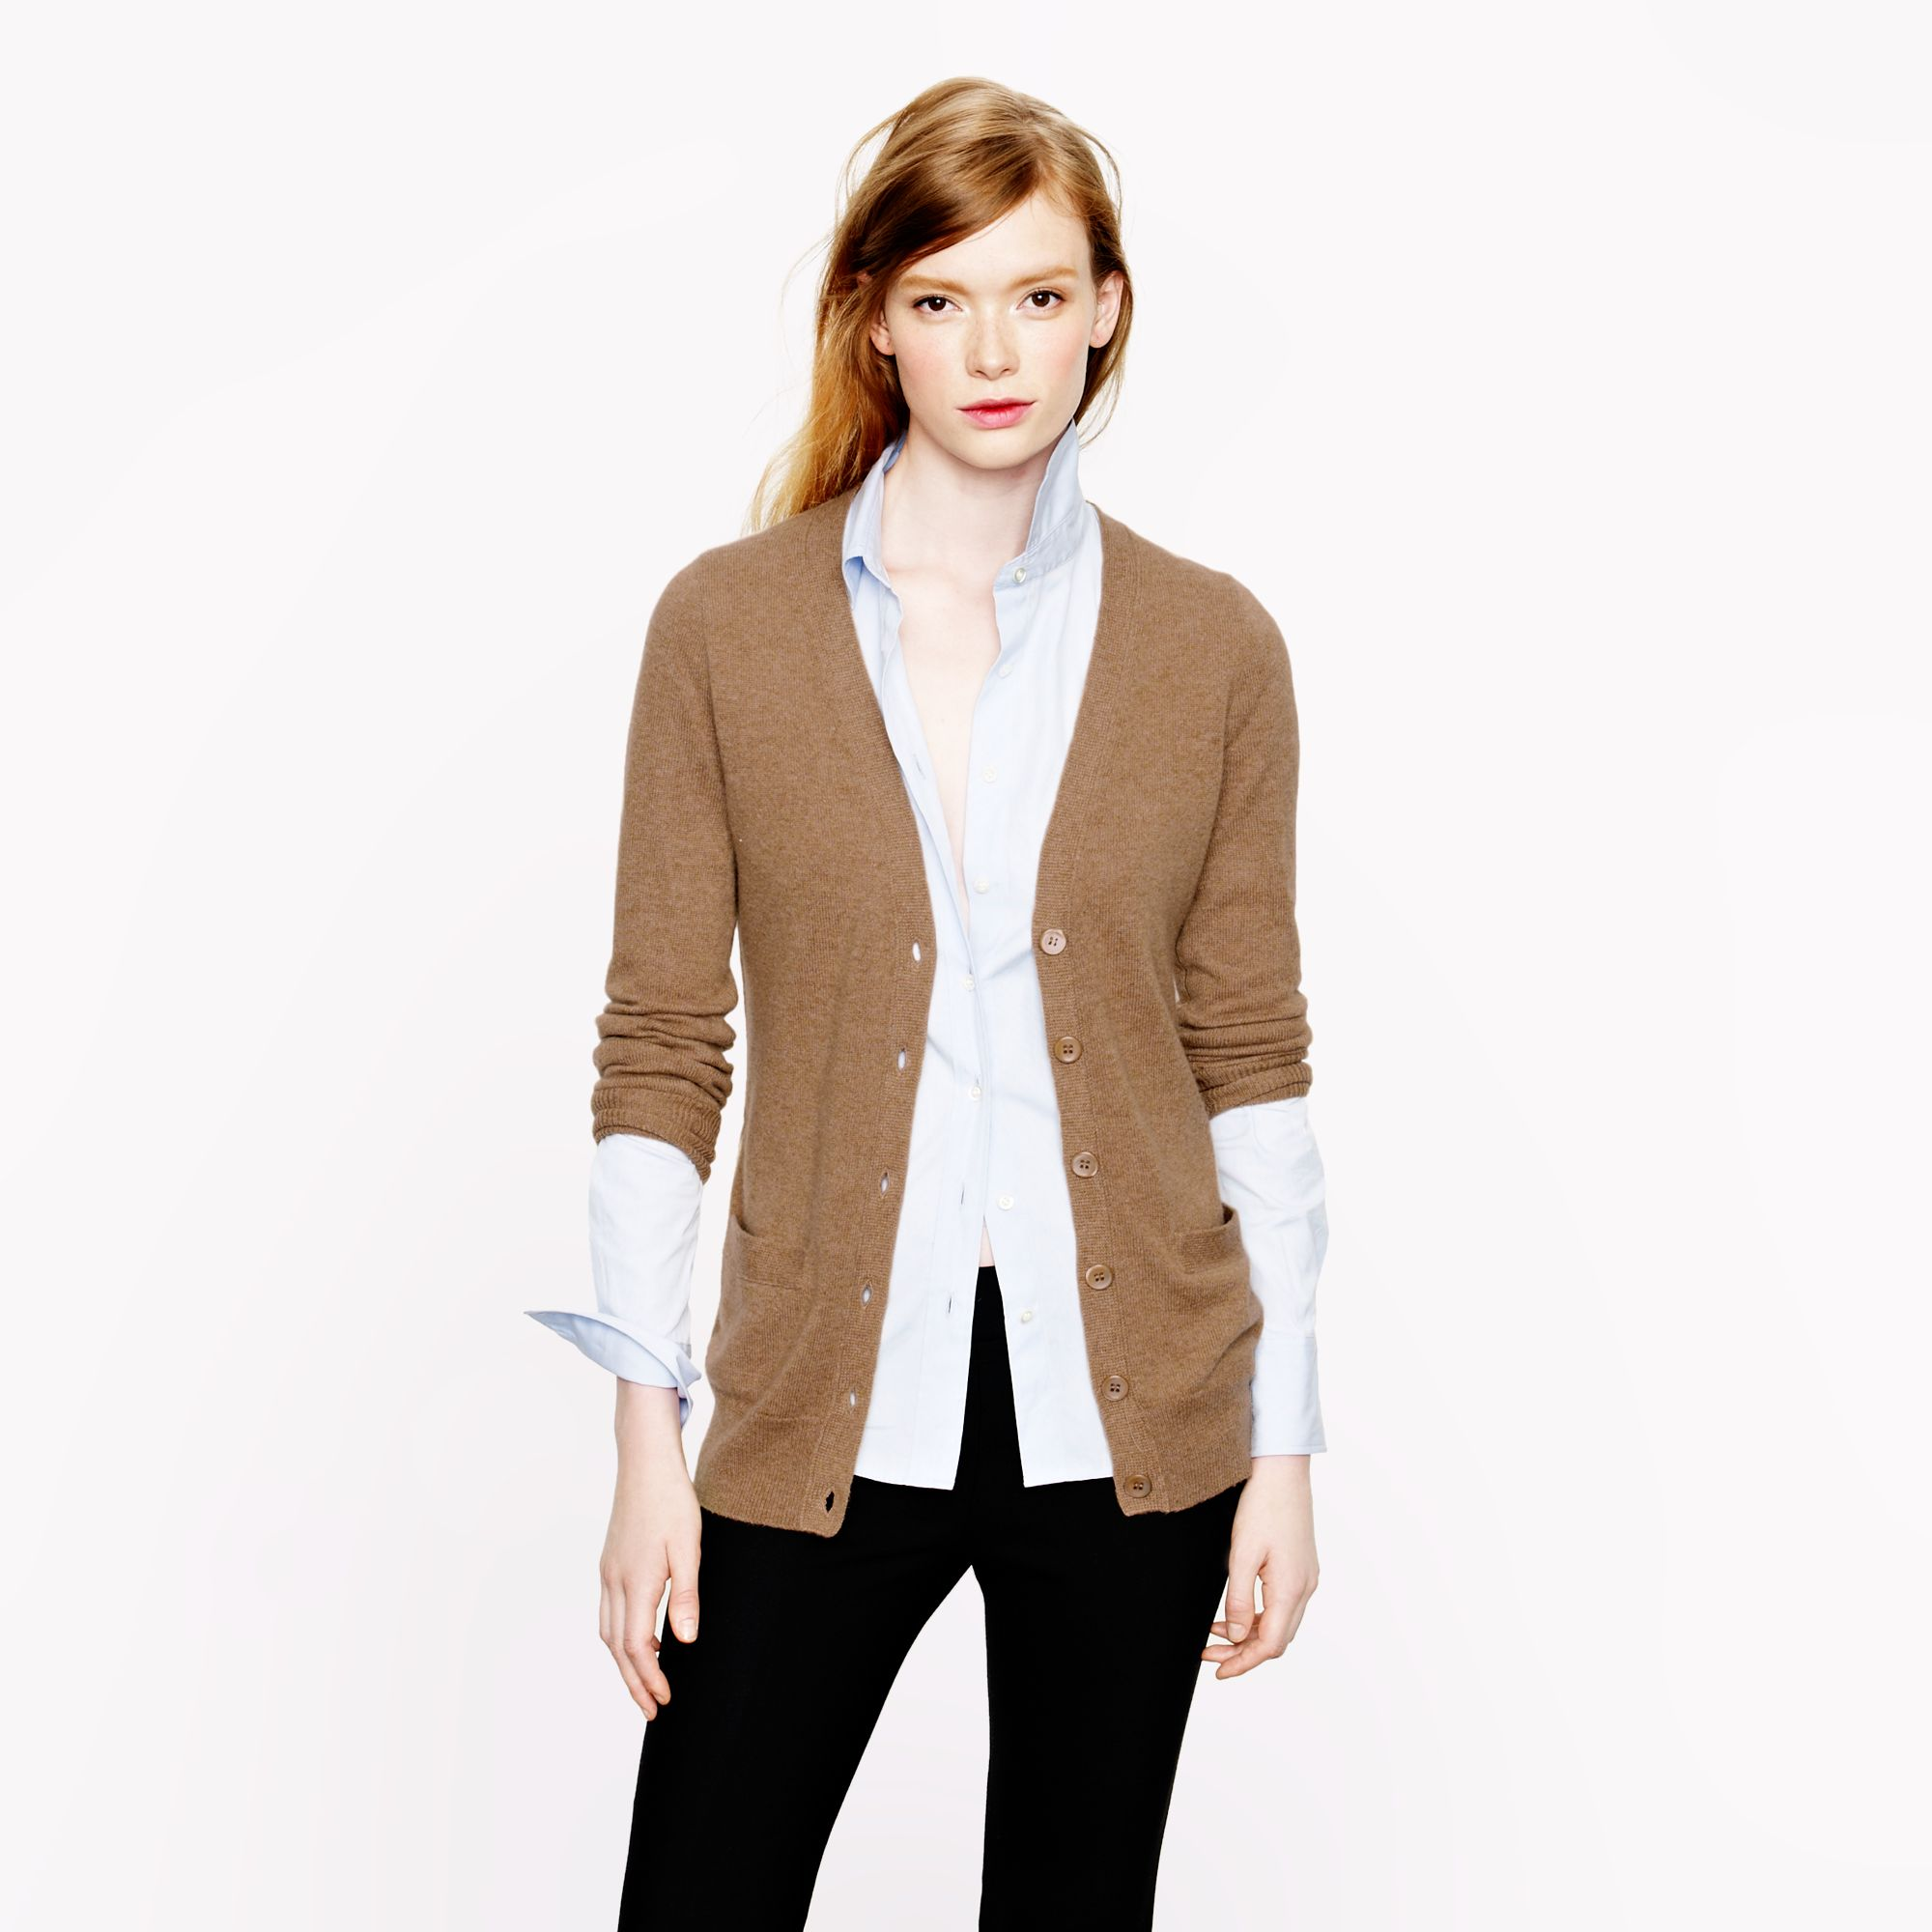 J.crew Collection Cashmere Boyfriend Cardigan Sweater in Brown | Lyst